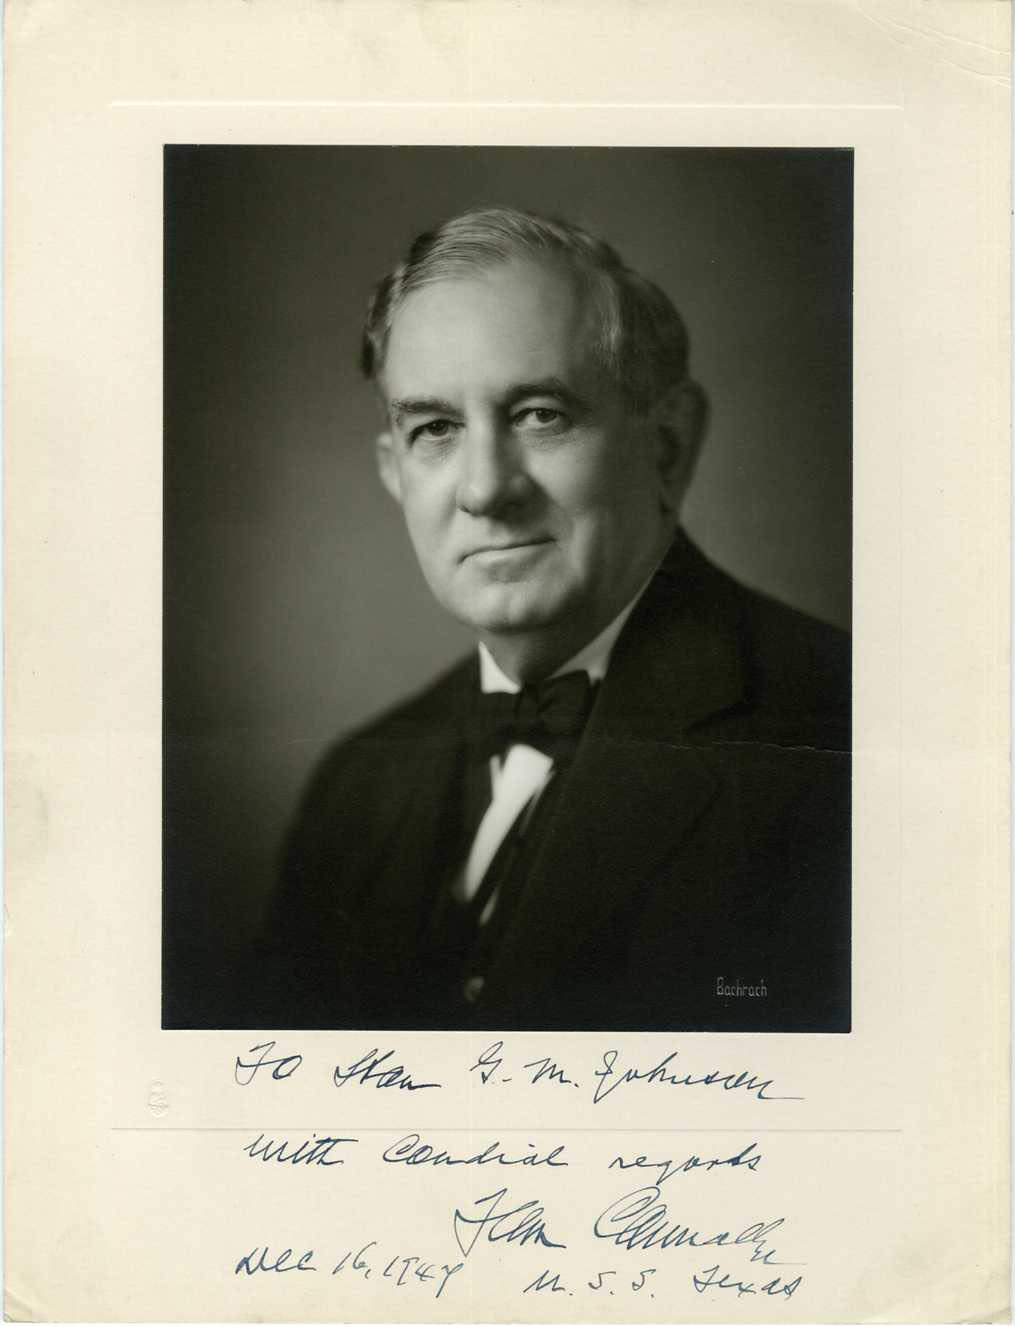 TOM CONNALLY (TEXAS SENATOR / DEMOCRAT) - SIGNED POLITICAL PRINTED PHOTO 1947